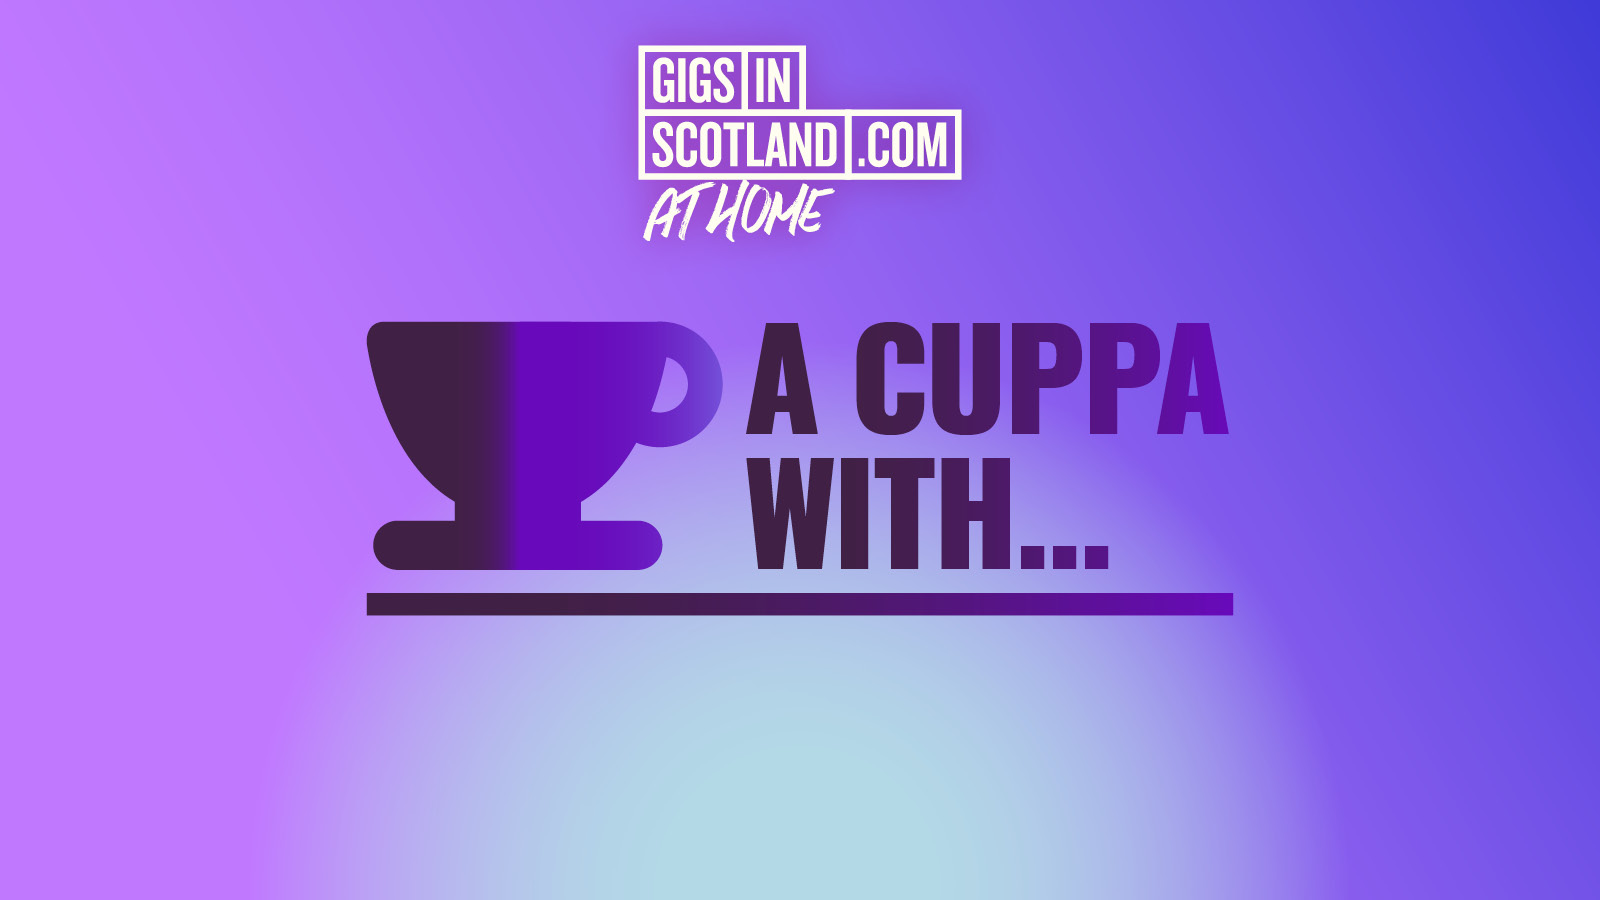 A Cuppa With Lauran Hibberd